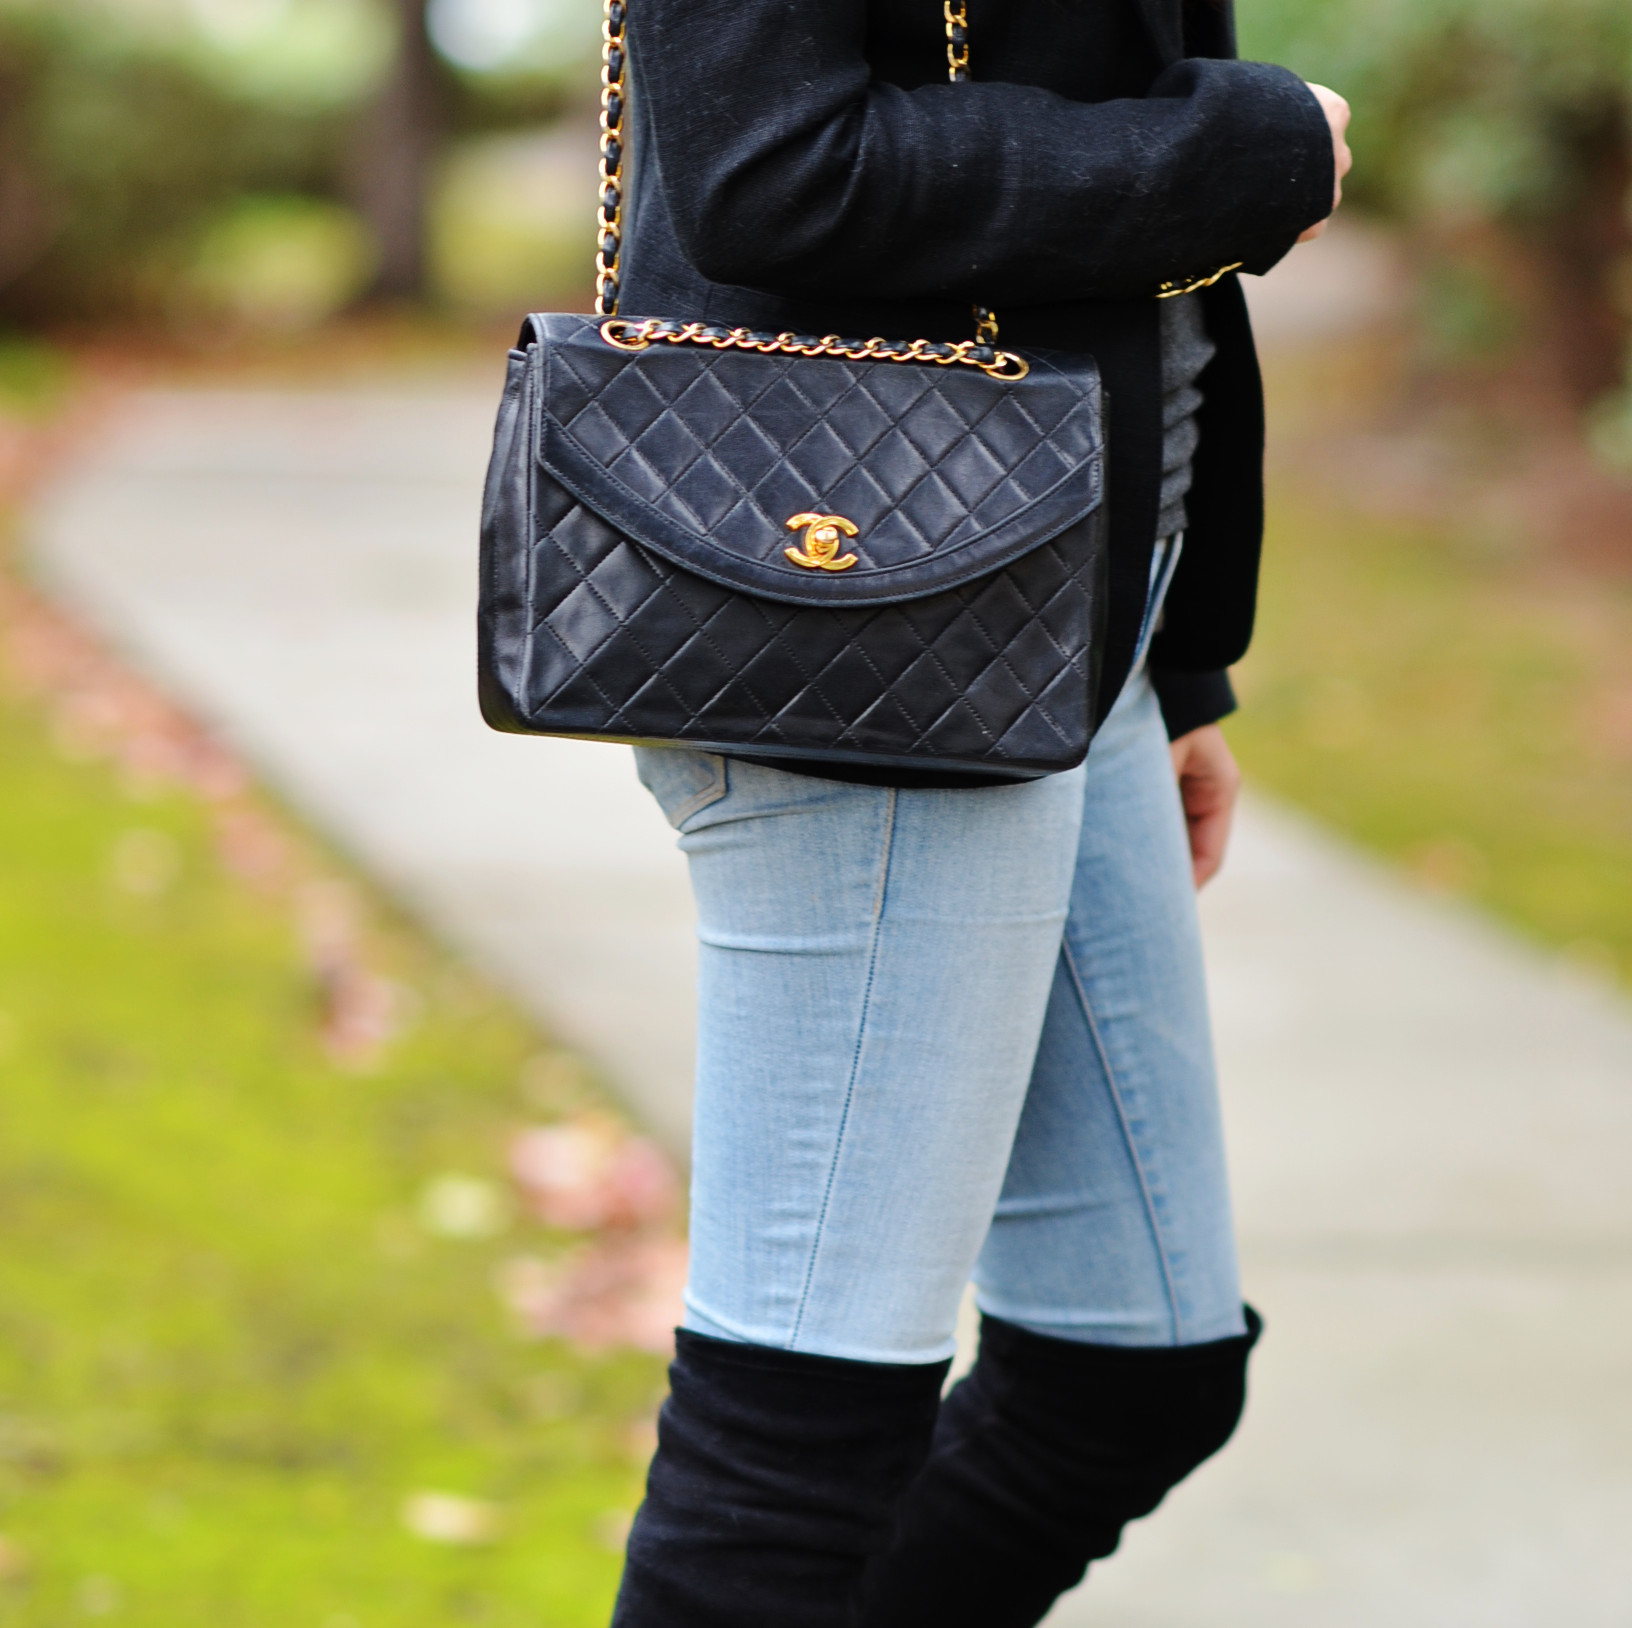 wearing vintage 1990s Chanel navy flap shoulder bag outfit